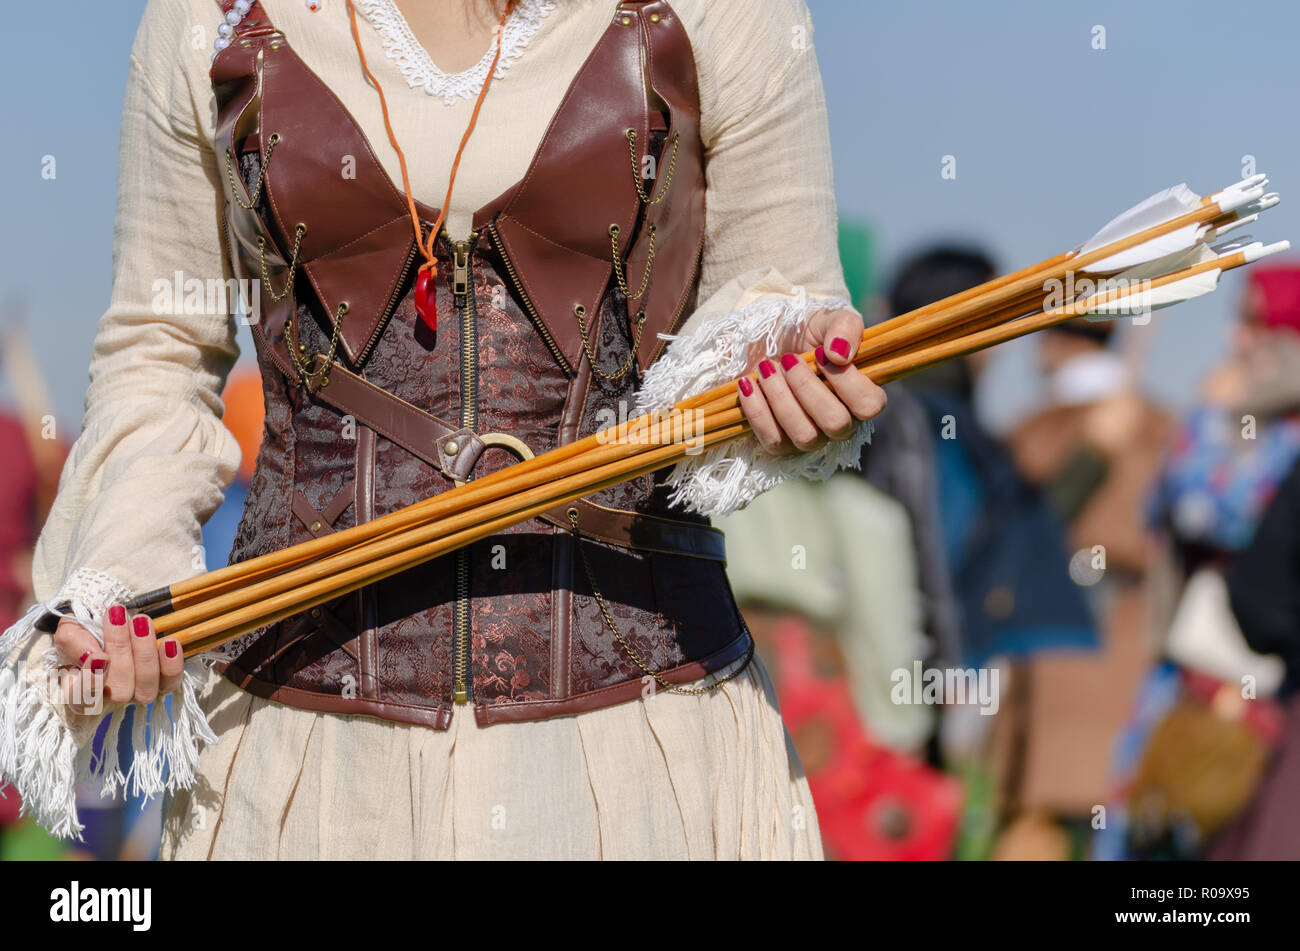 Traditional Archery Competitions. Traditional archery equipment.Female archer is holding arrows in her hand. - Stock Image